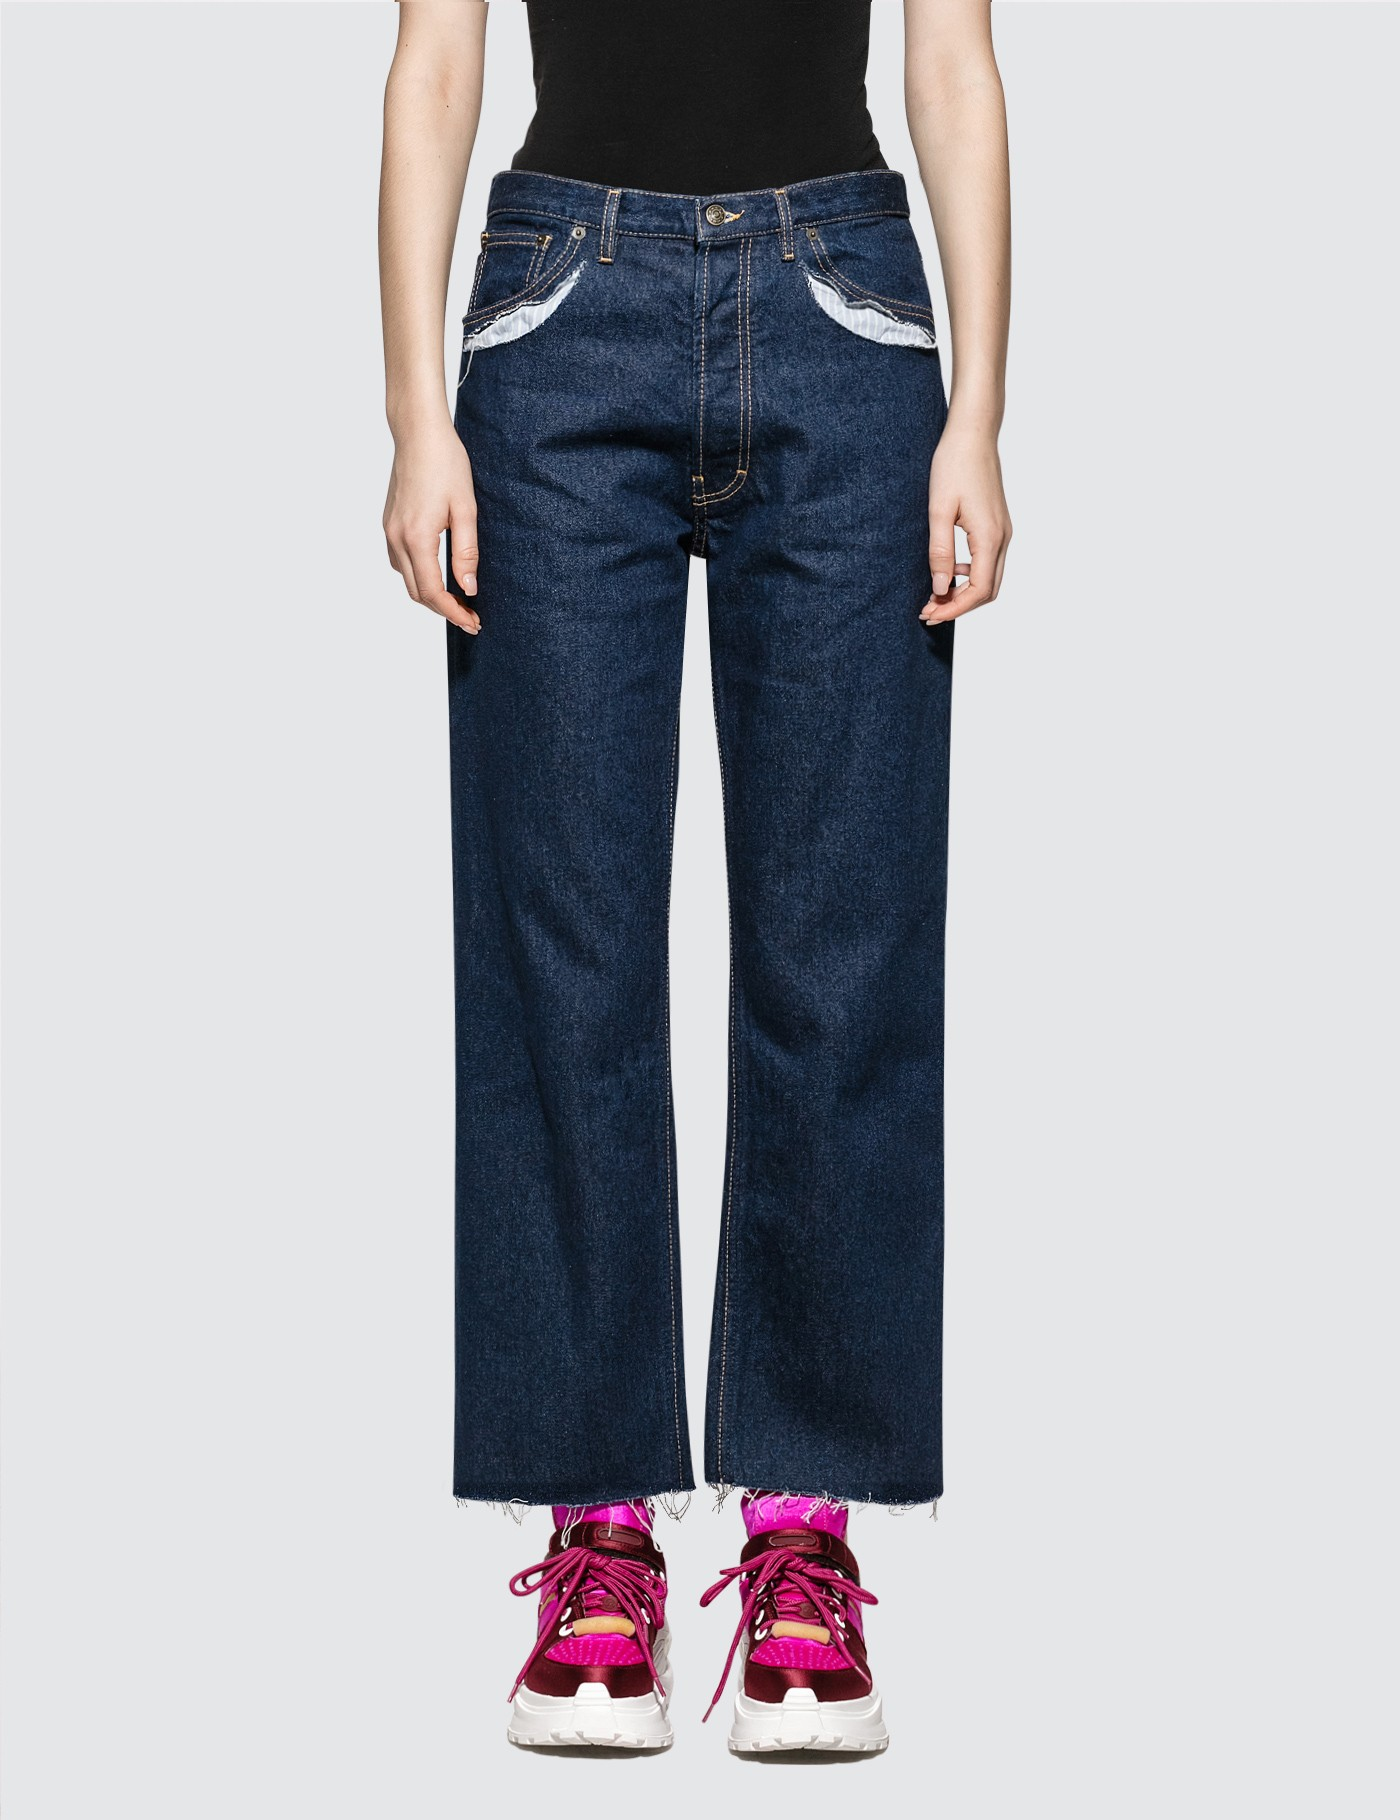 Maison Margiela Crafted Pocket Denim Jeans